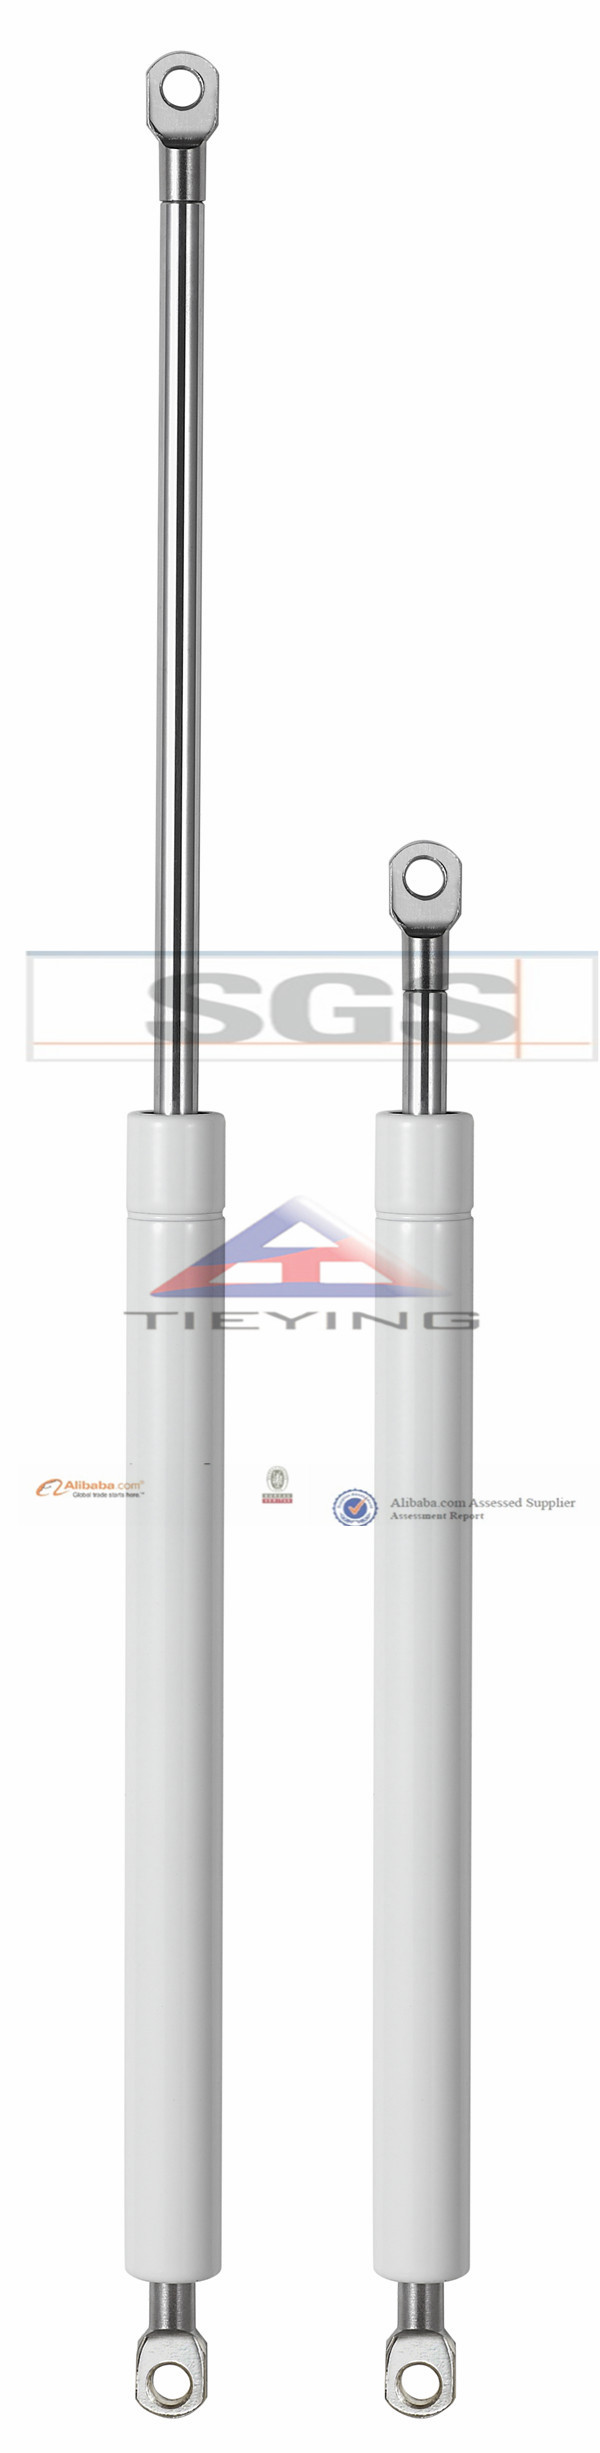 Cylinder Nitrogen Spring For Wall Bed Gas Strut 580mm Extended Length